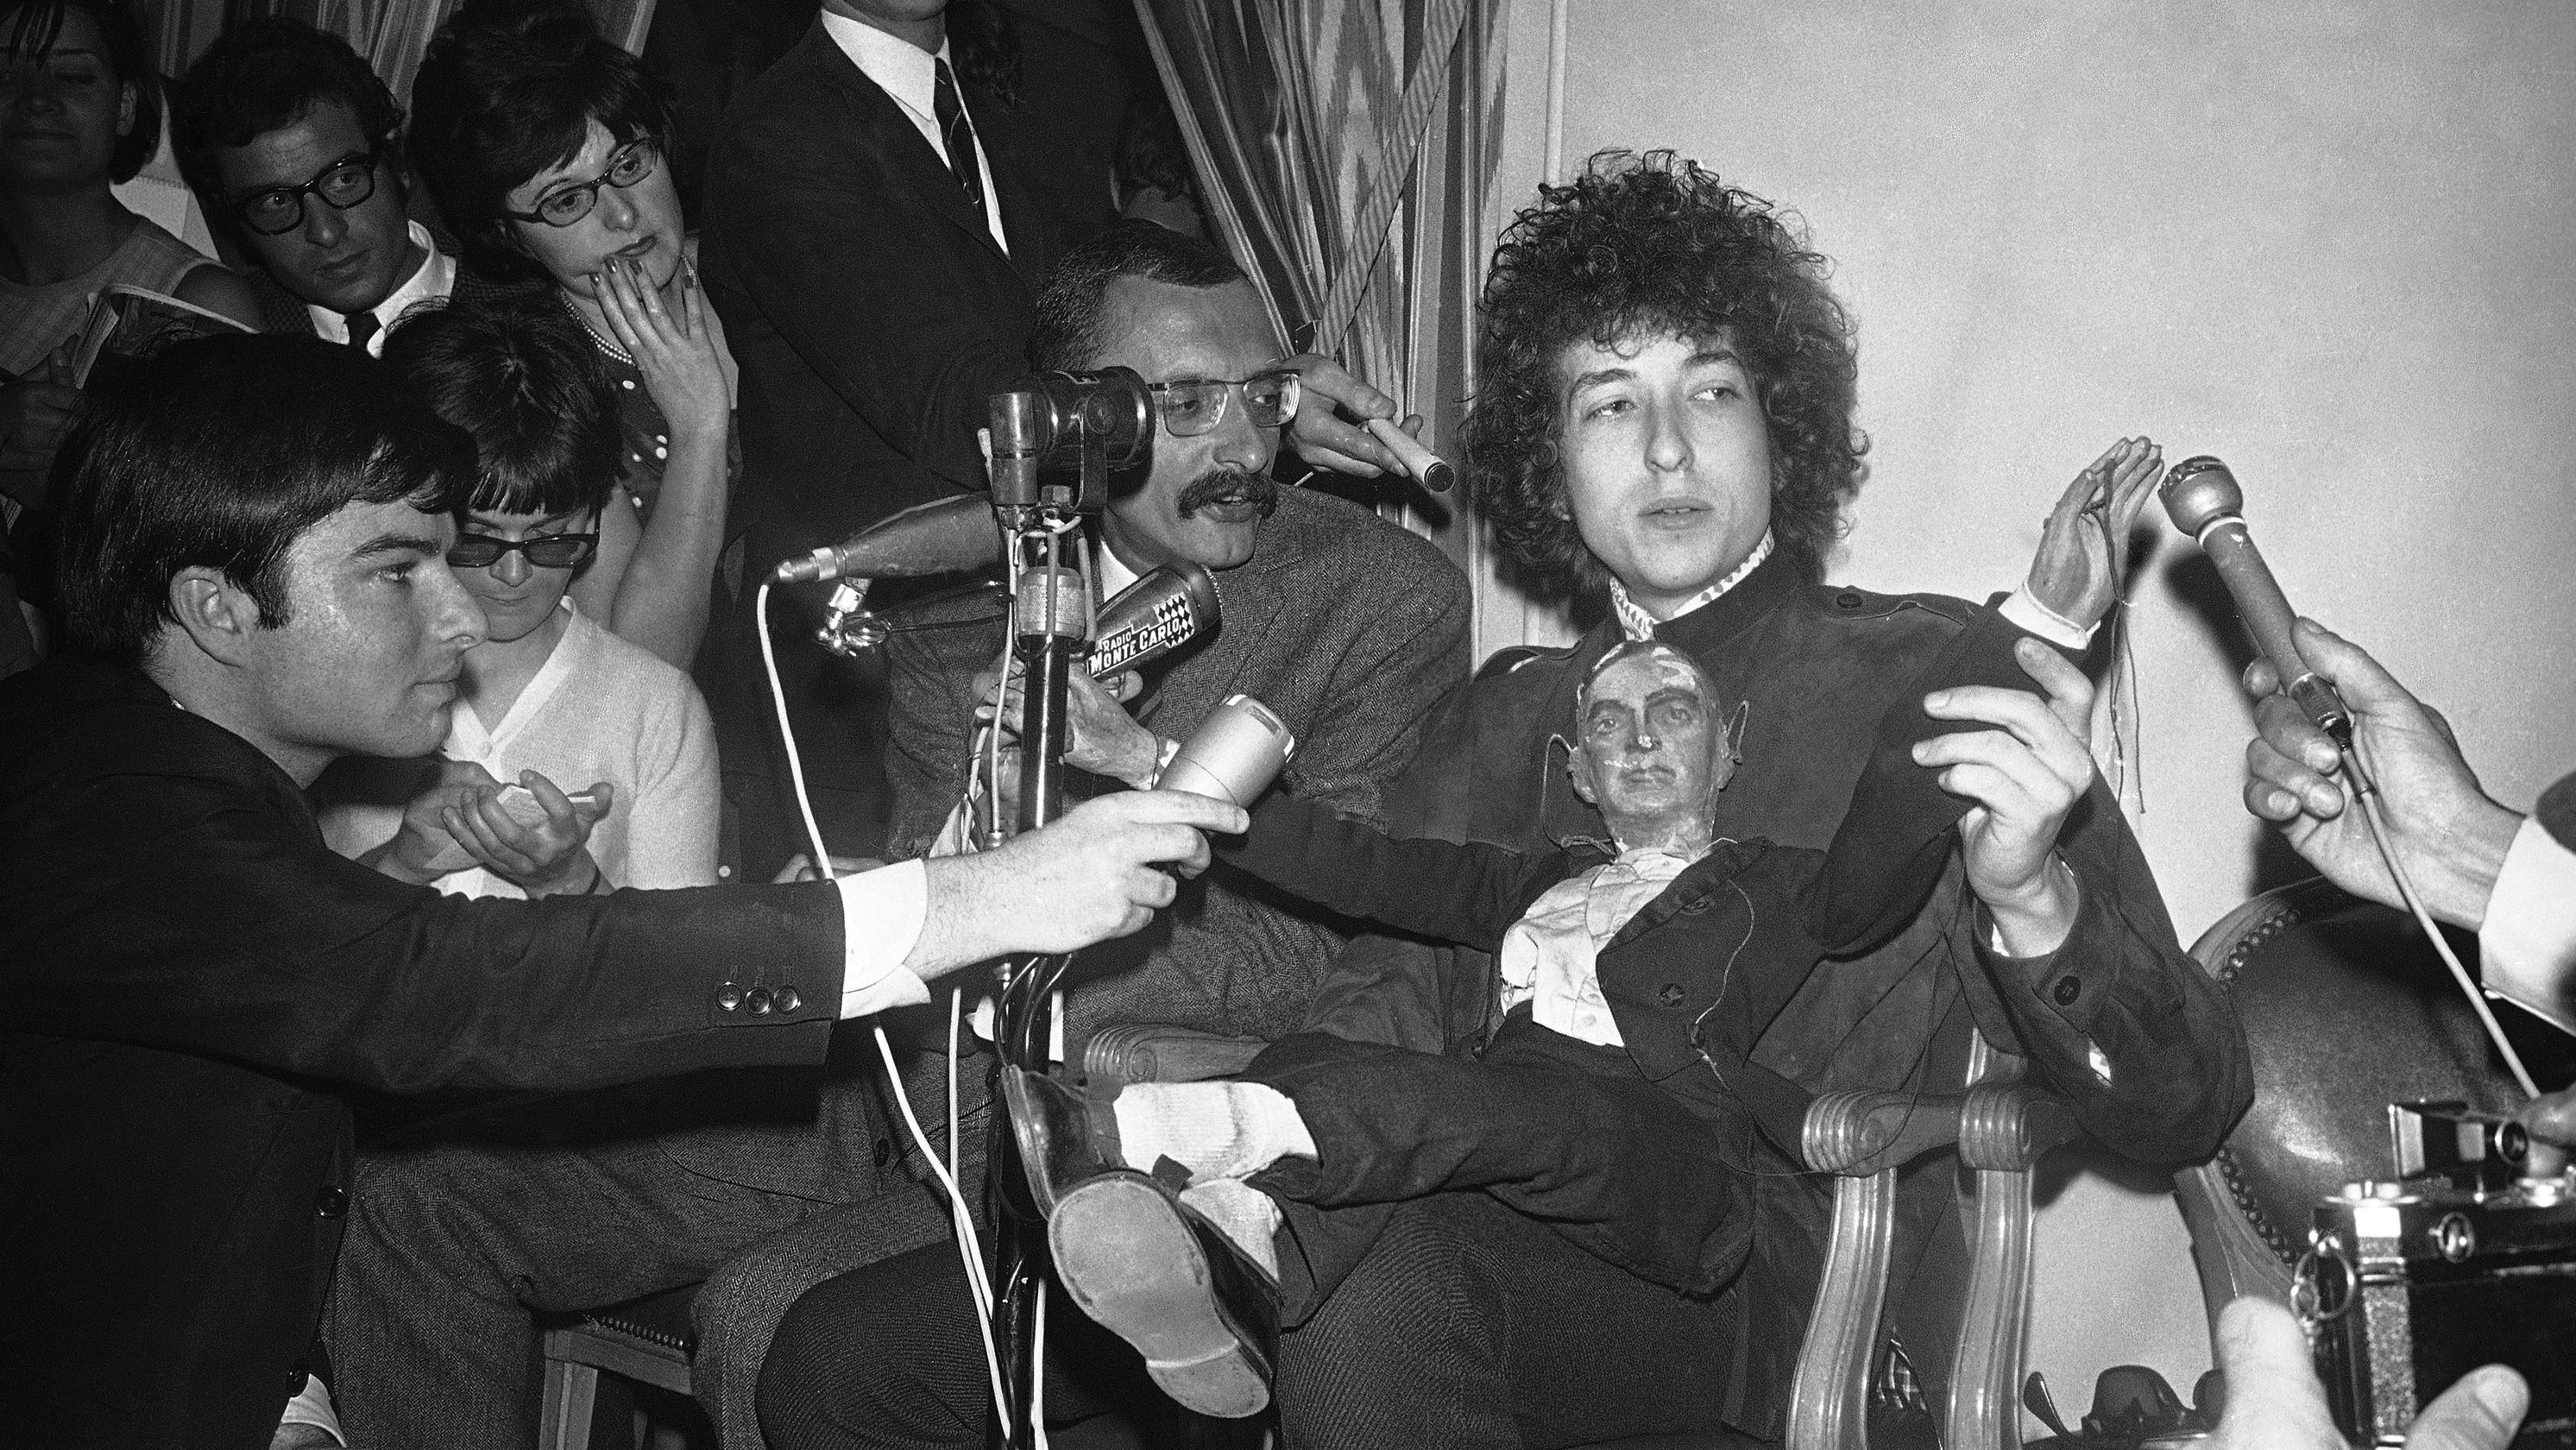 American folk singer Bob Dylan sits with a puppet as he faces the media during a press conference at the Hotel George V in Paris, France on May 23, 1966. He will appear on Tuesday at the Paris Olympia music-hall. (AP Photo/Pierre Godot)